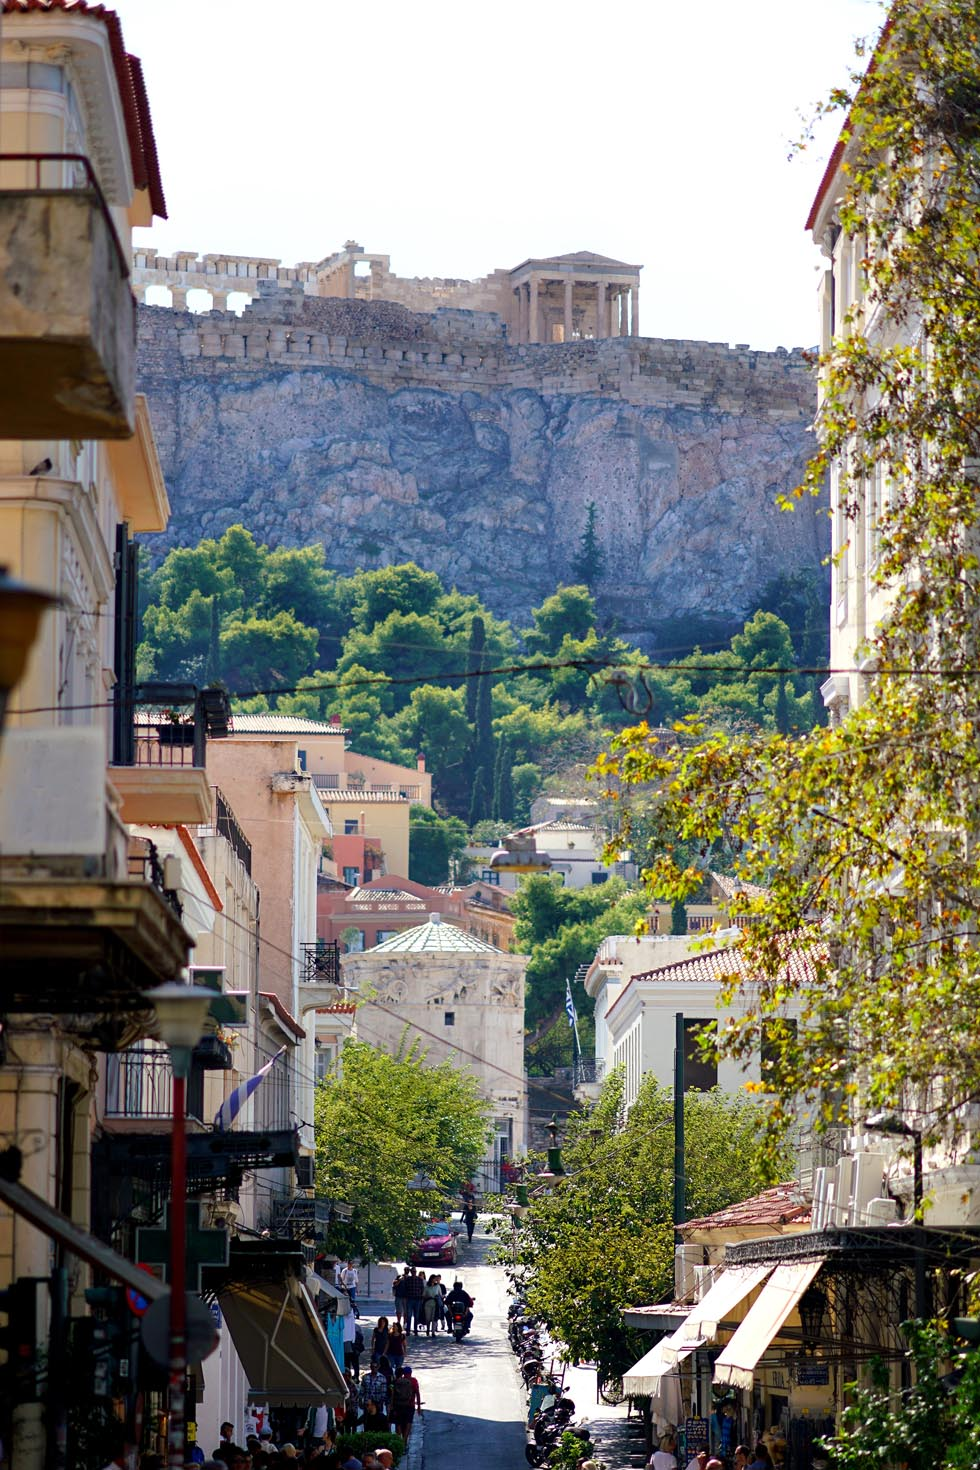 Enlarged - View of the Acropolis and Parthenon from Athens Street